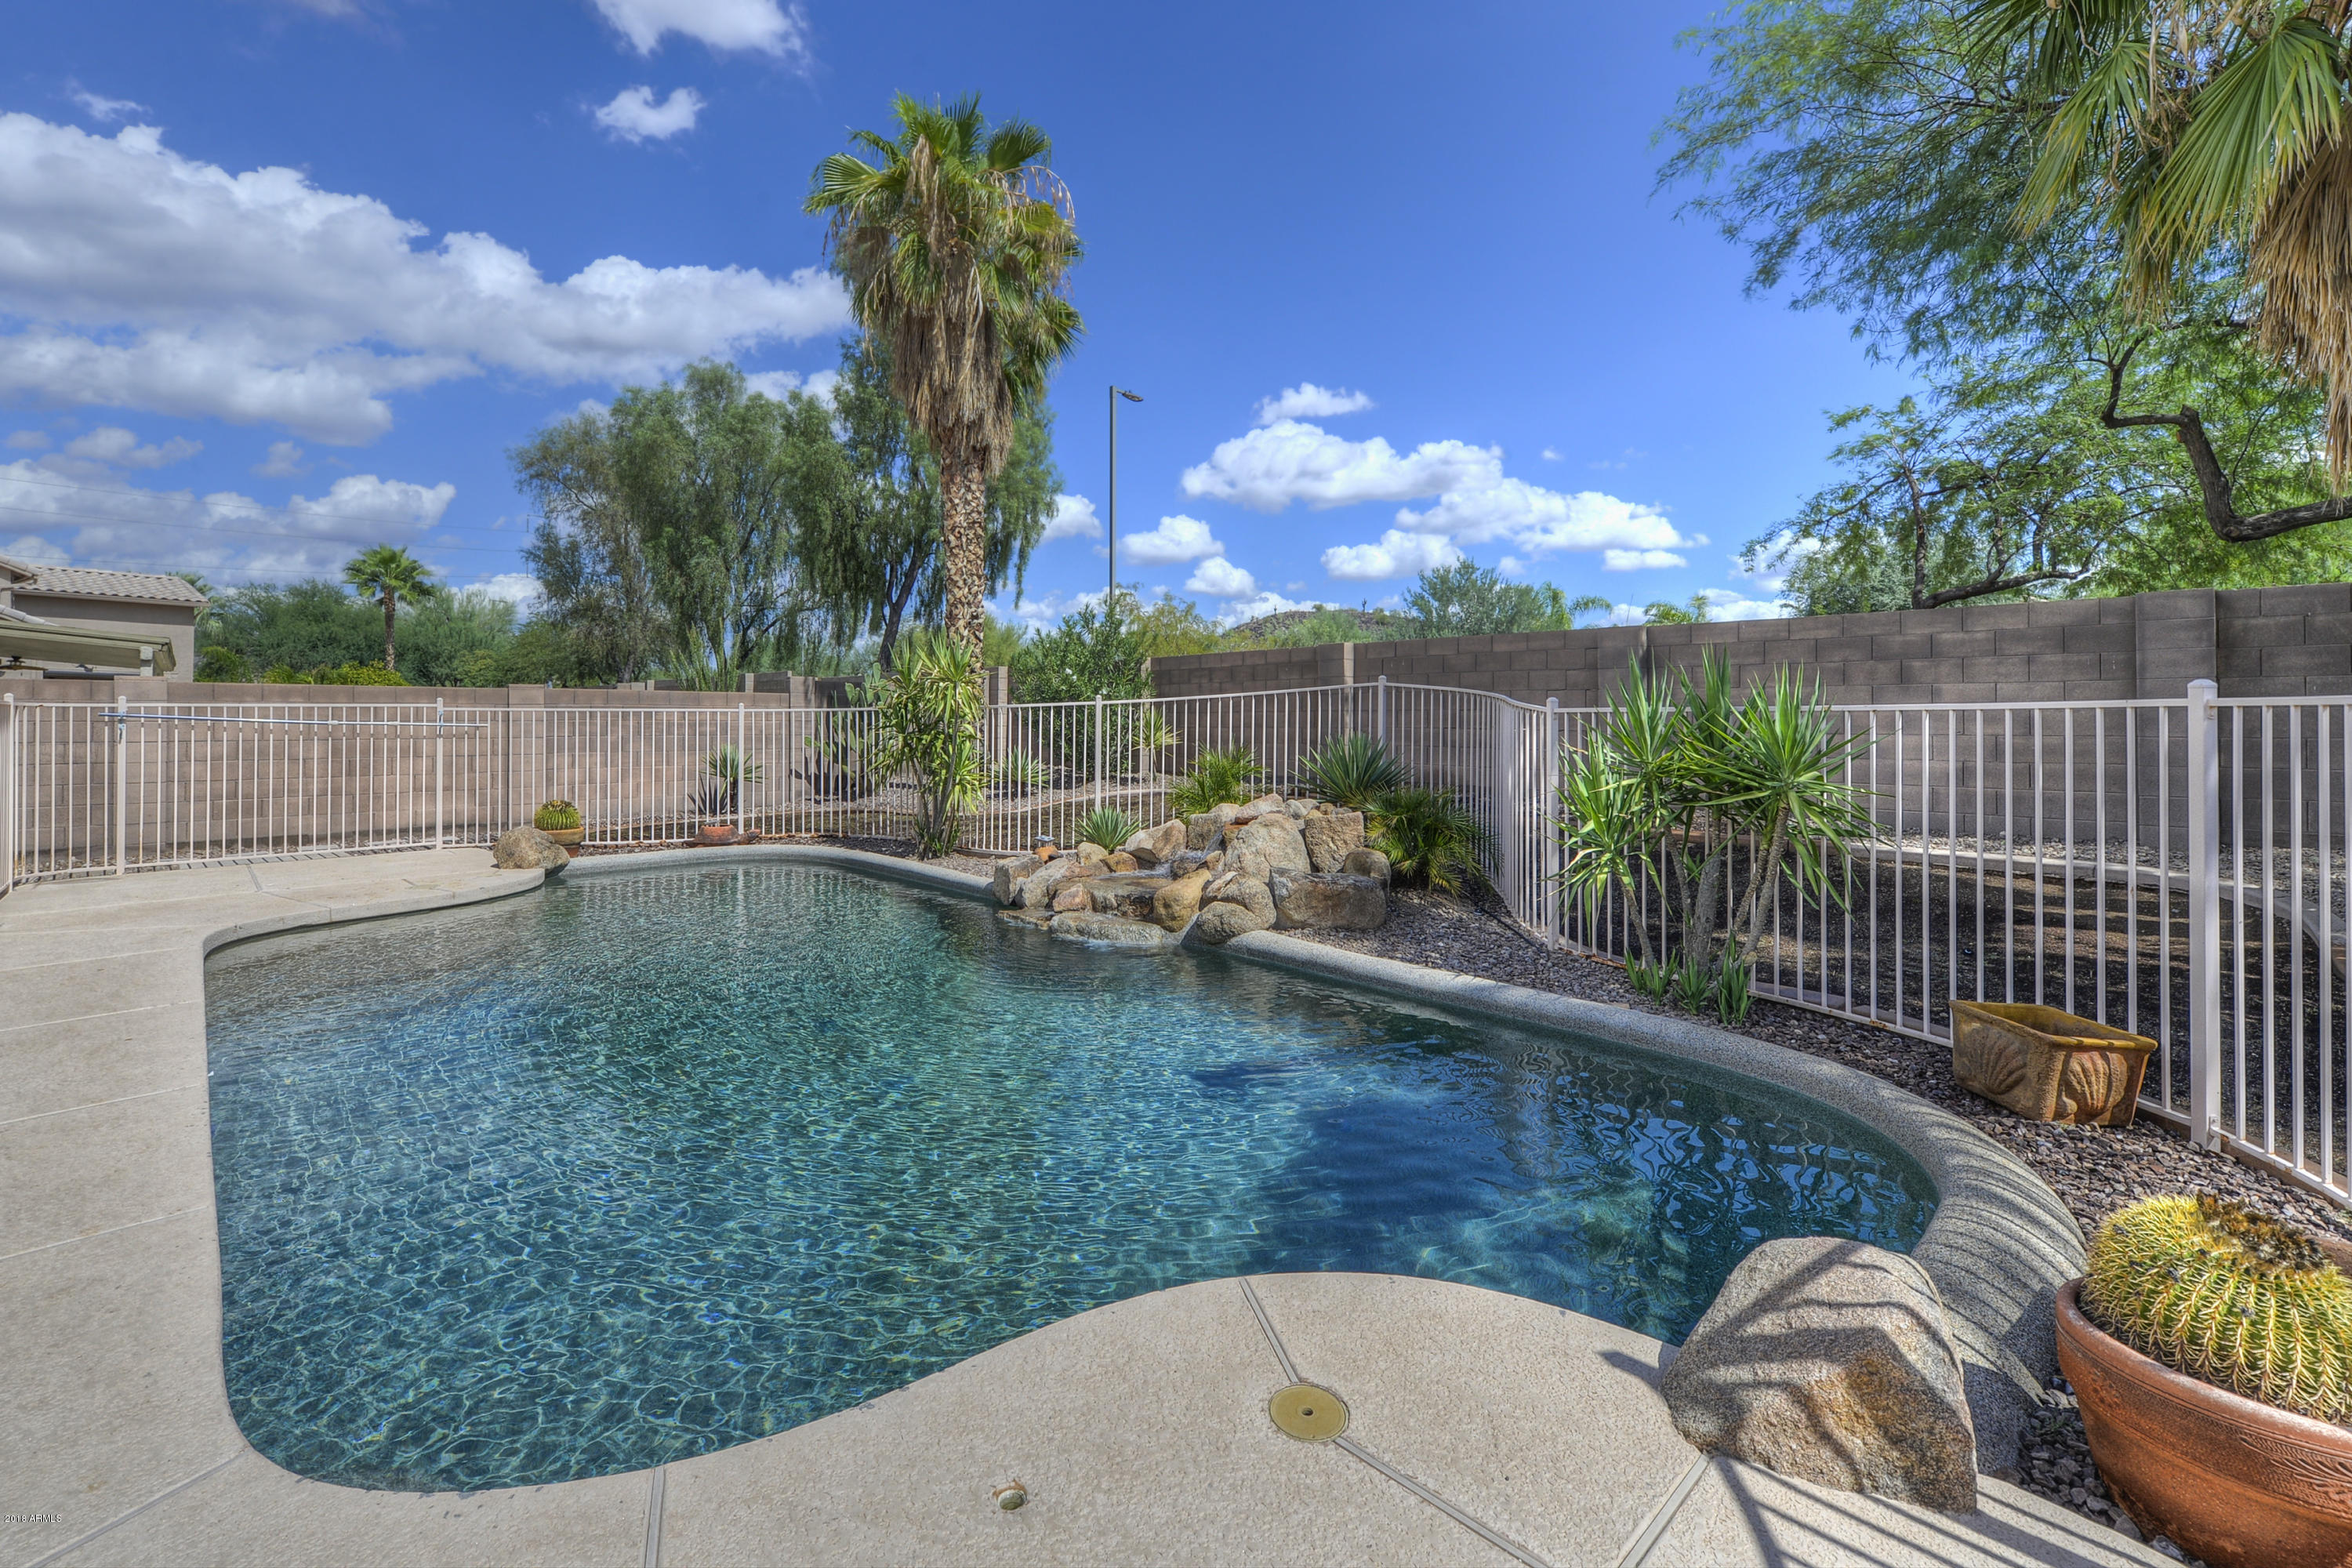 MLS 5830410 23023 N 21st Way, Phoenix, AZ 85024 Phoenix AZ Mountaingate